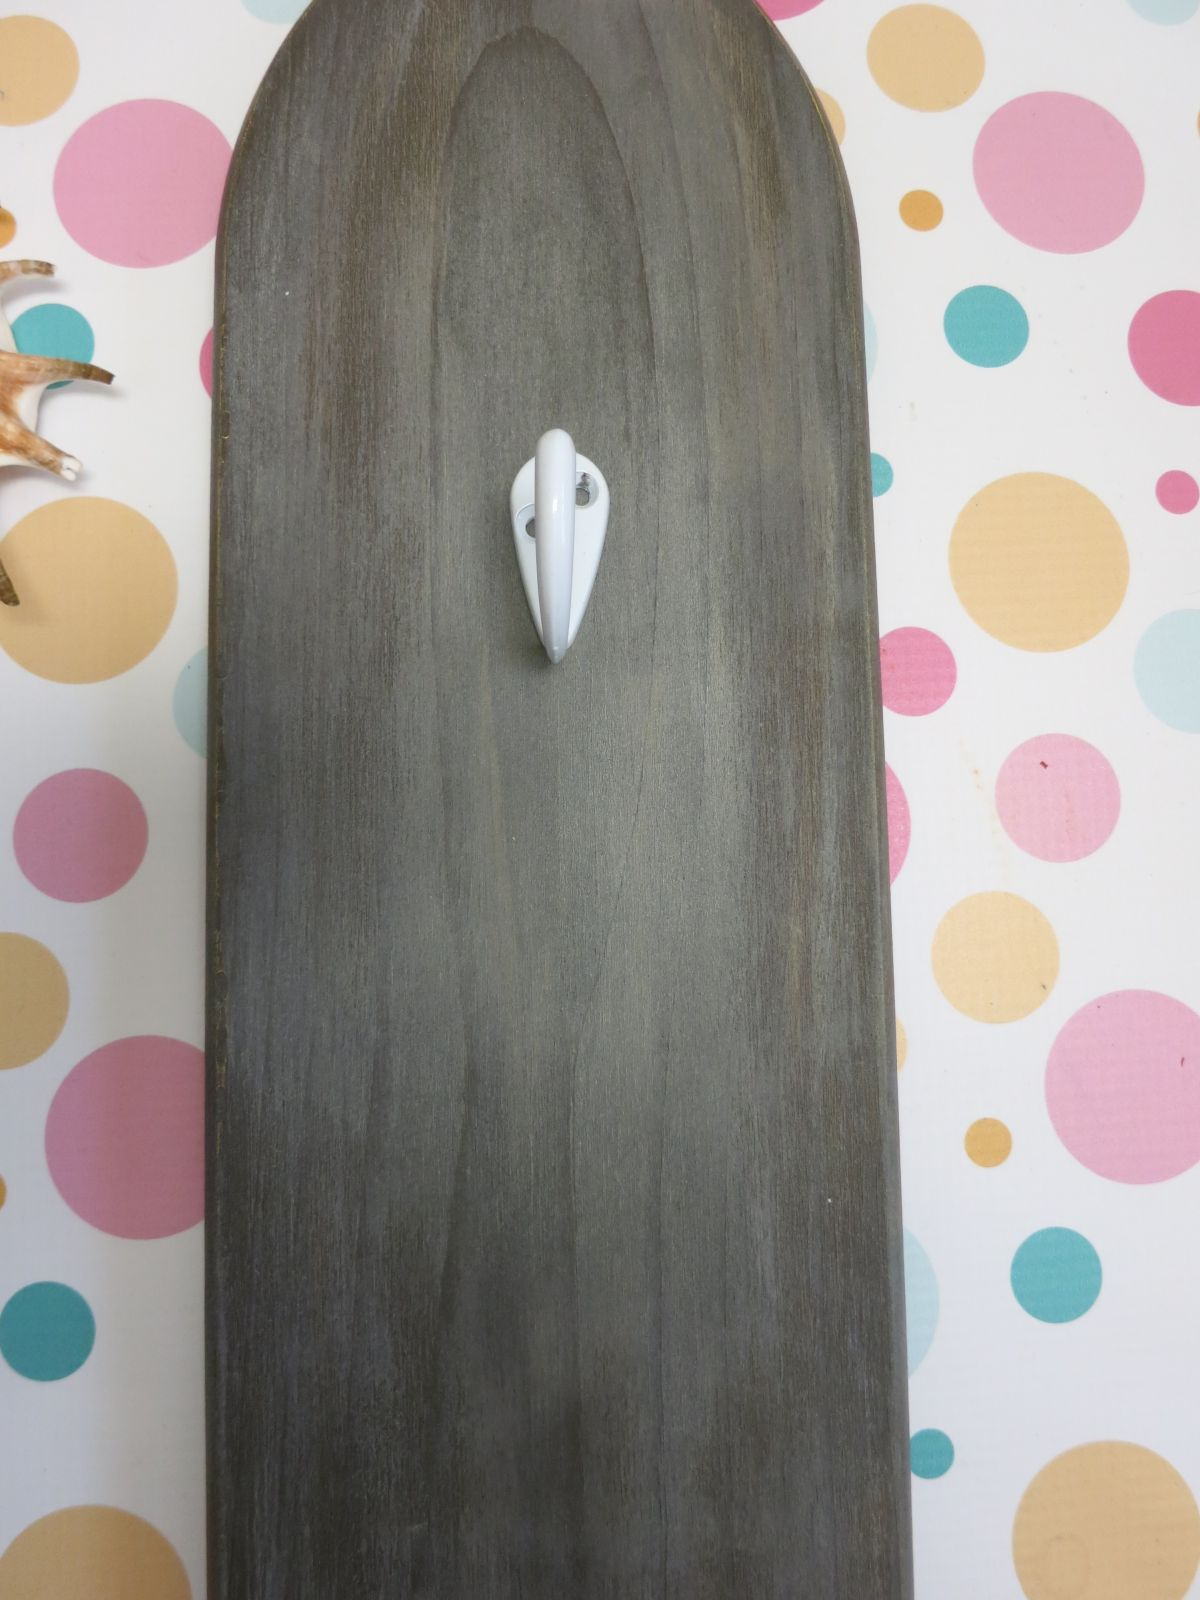 DIY Paddle Towel Hook Home Decor Hang